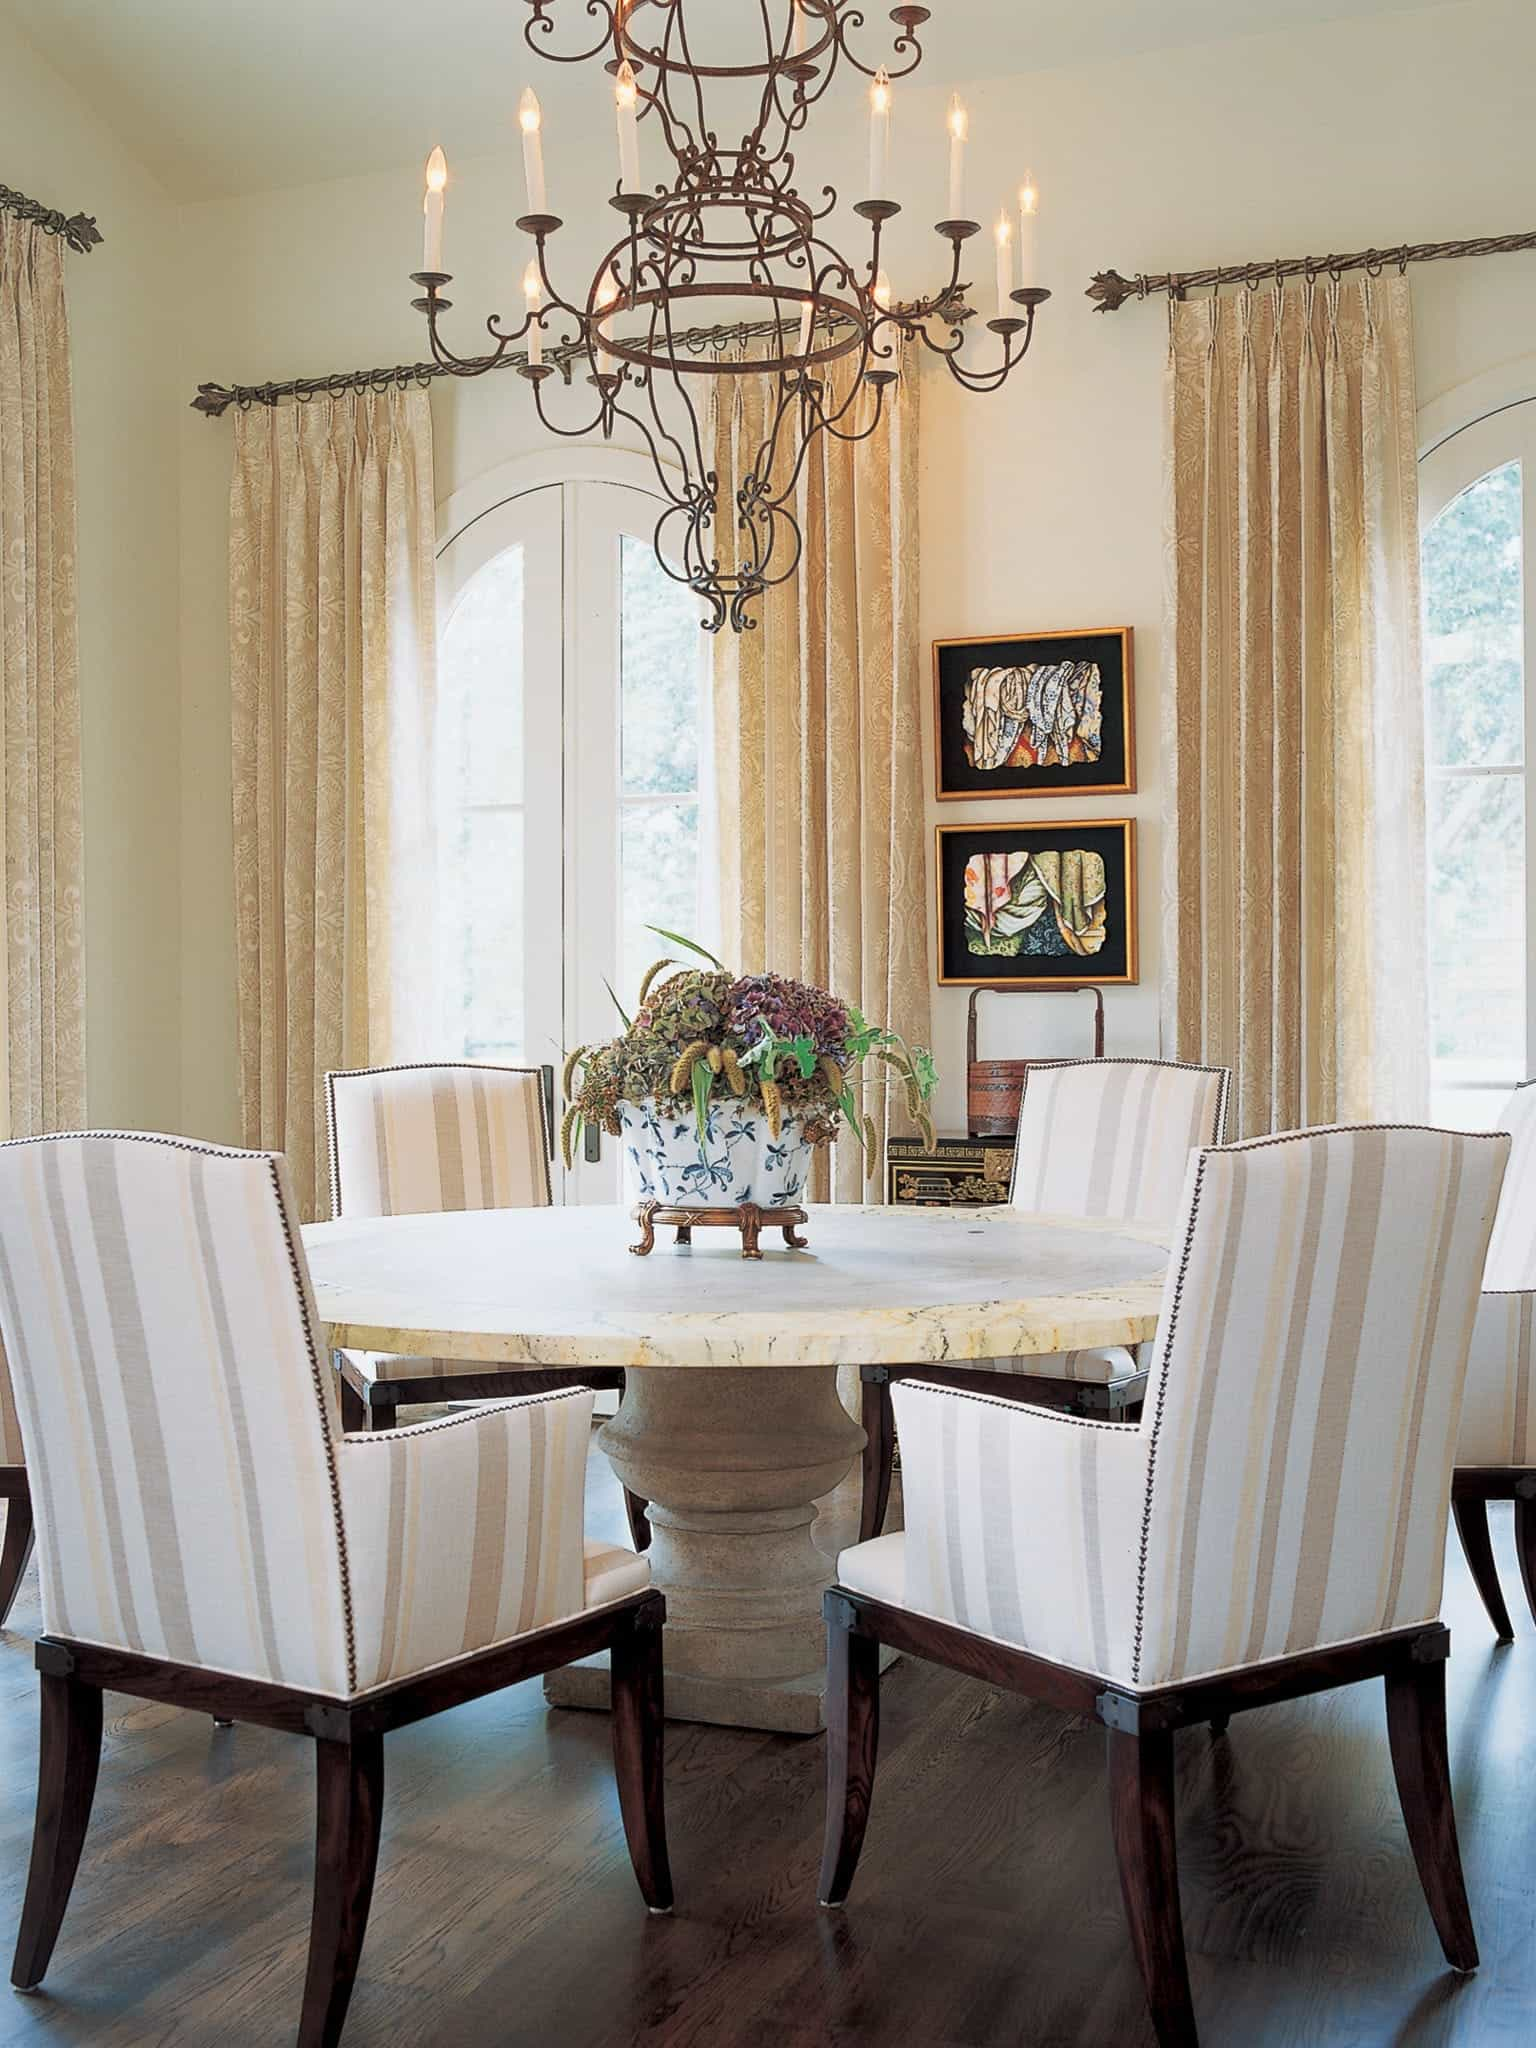 Classic Italian Dining Room With Ornate Chandelier And Round Marble Dining Table (View 13 of 25)